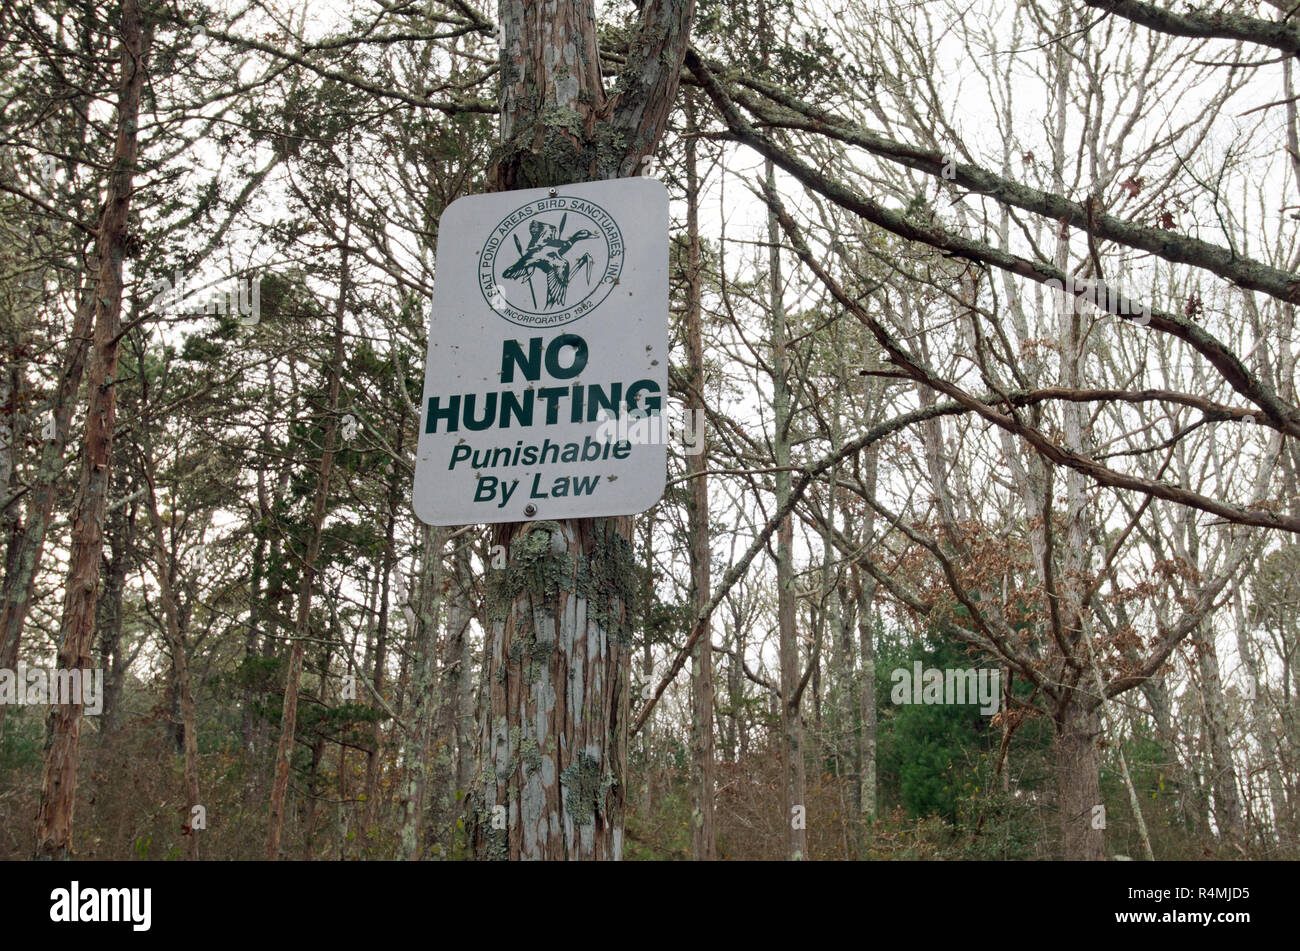 No Hunting Punishable By Law sign on tree at Salt Pond Areas Bird Sanctuaries  in Falmouth, Cape Cod, Massachusetts USA - Stock Image